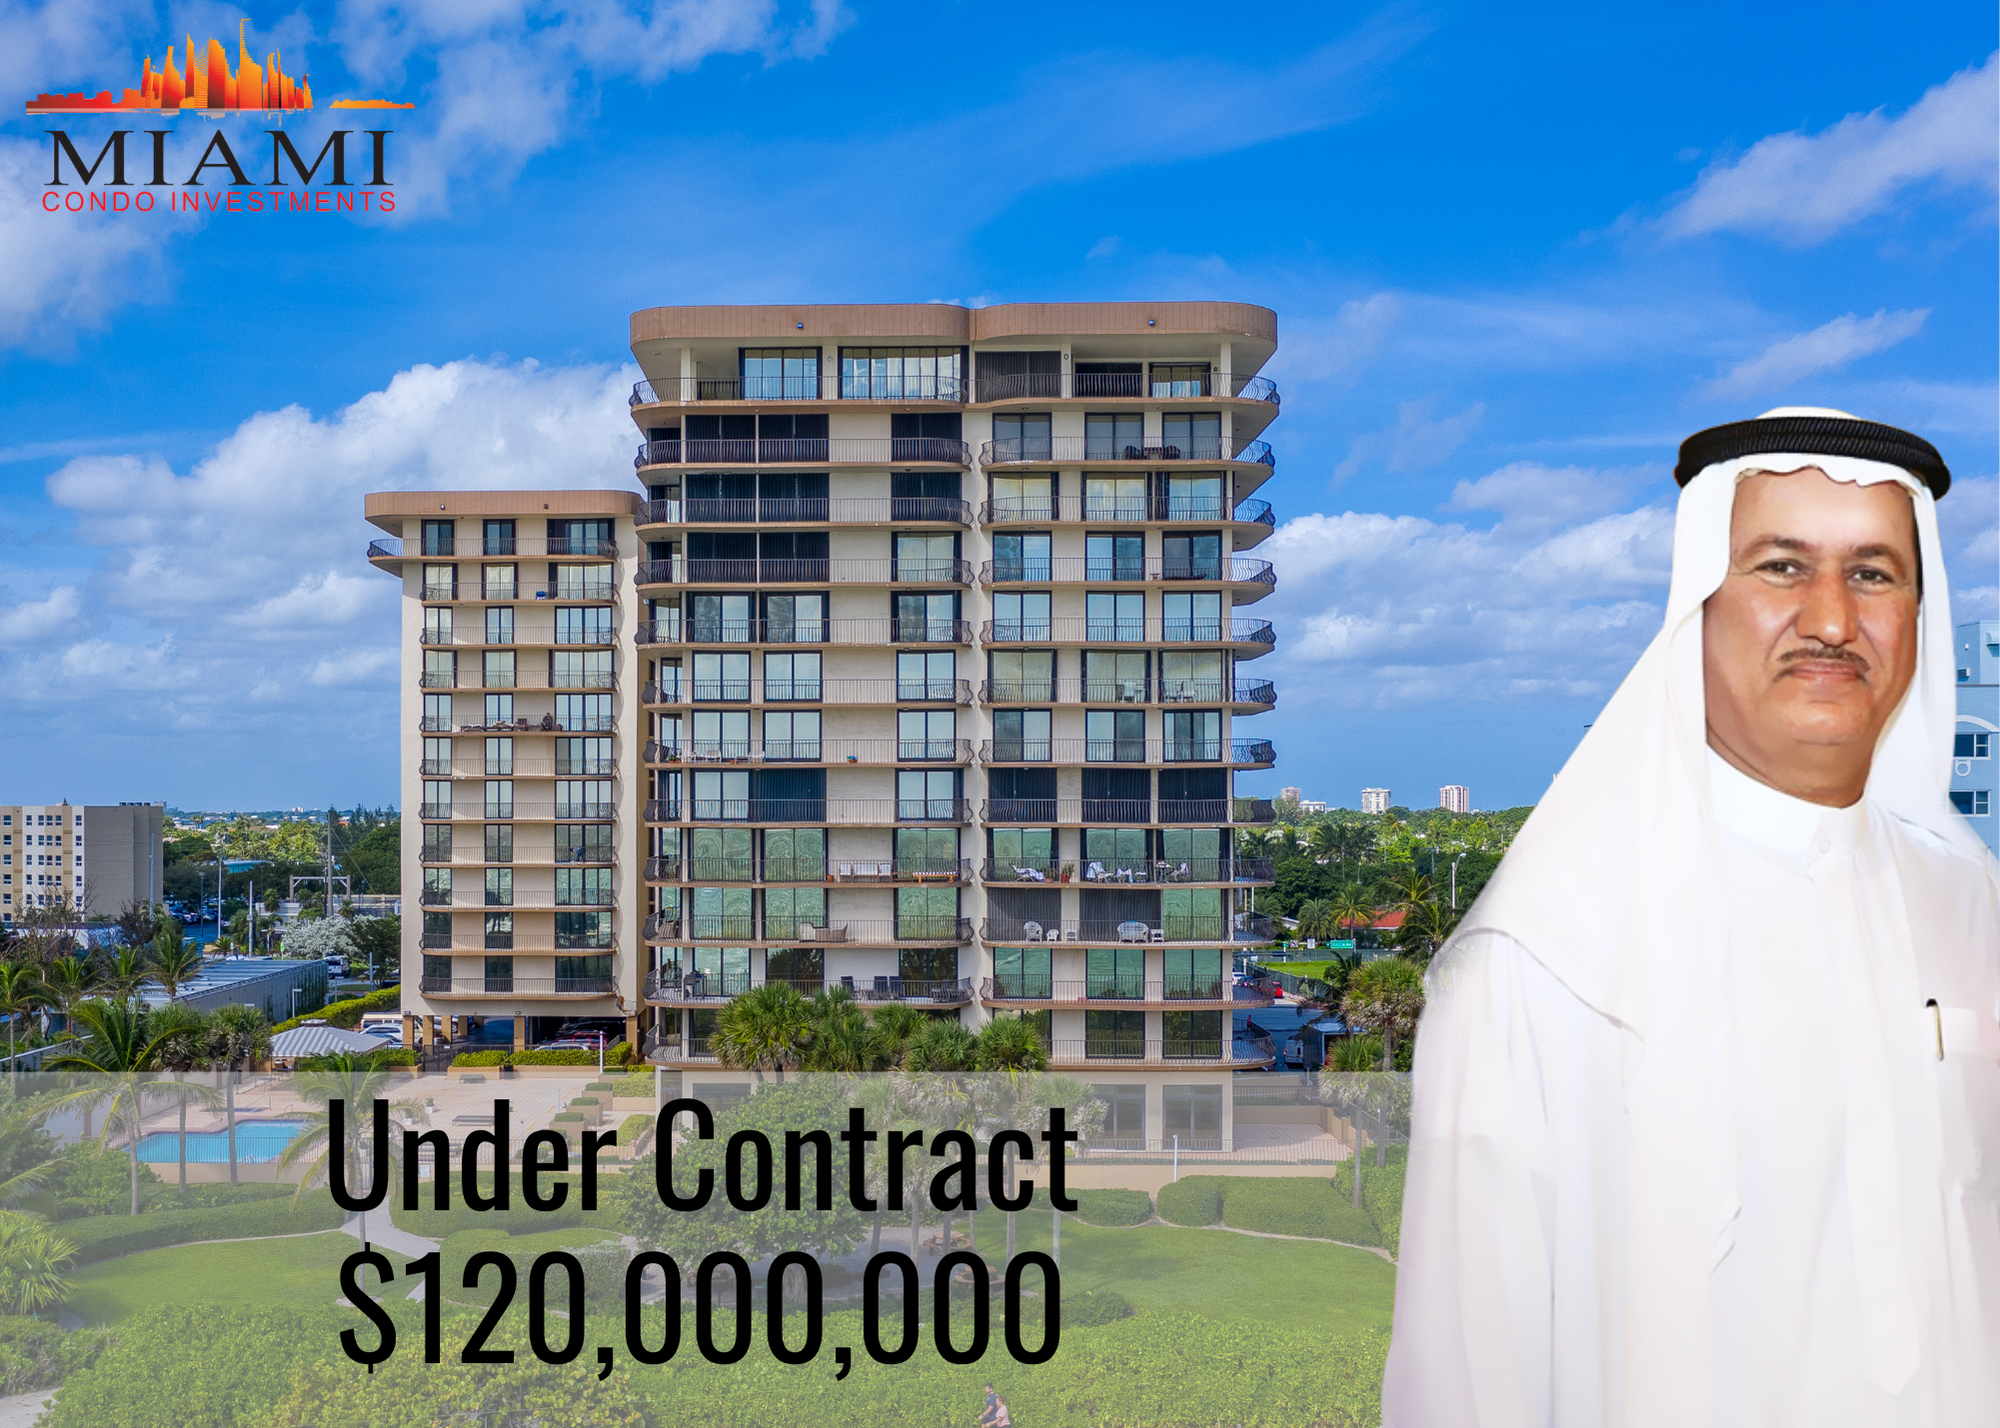 Champlain Towers South Under Contract